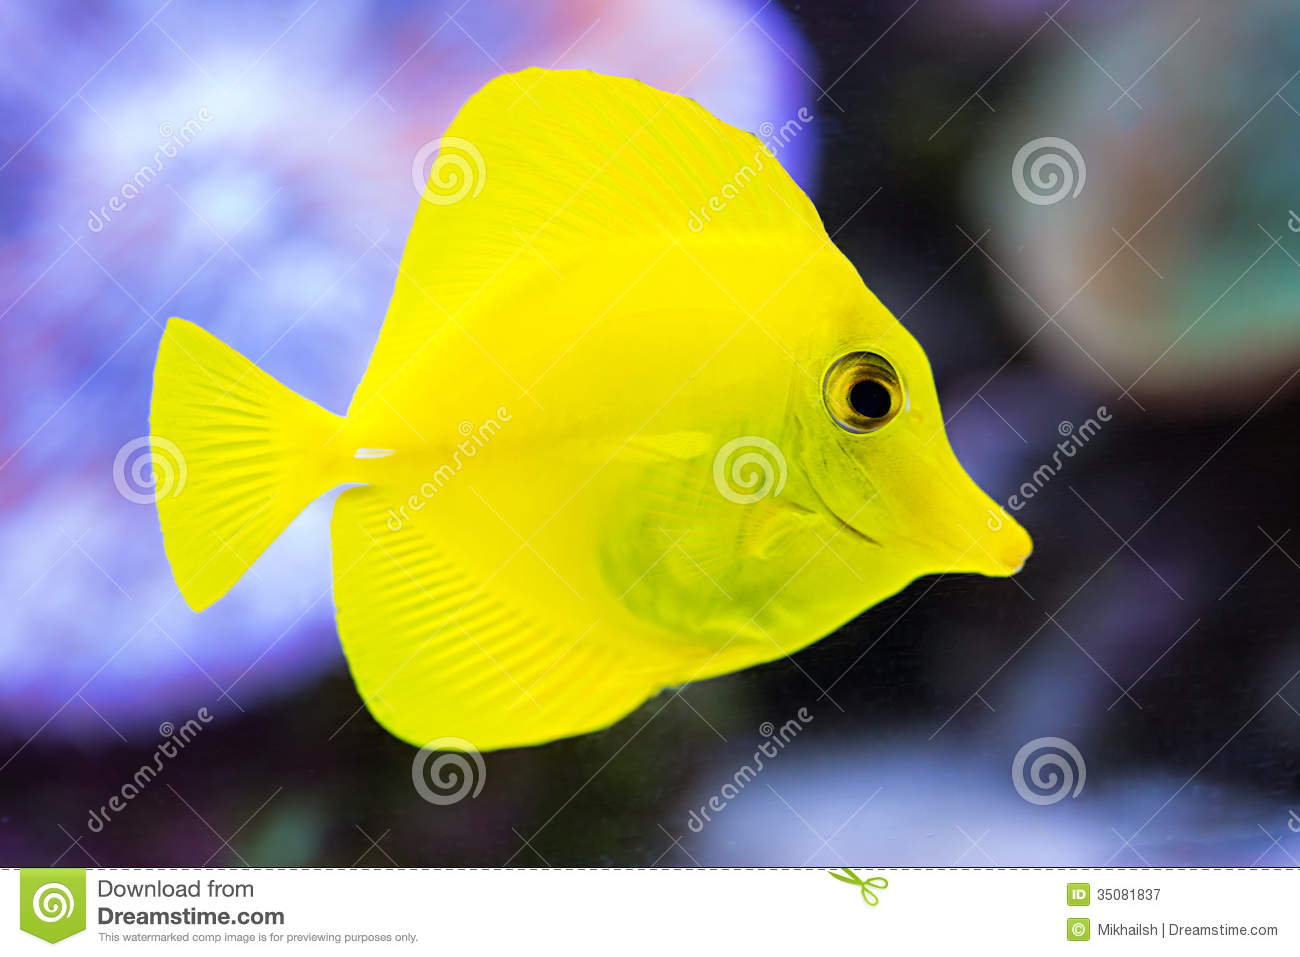 Coral reef fish yellow - photo#6